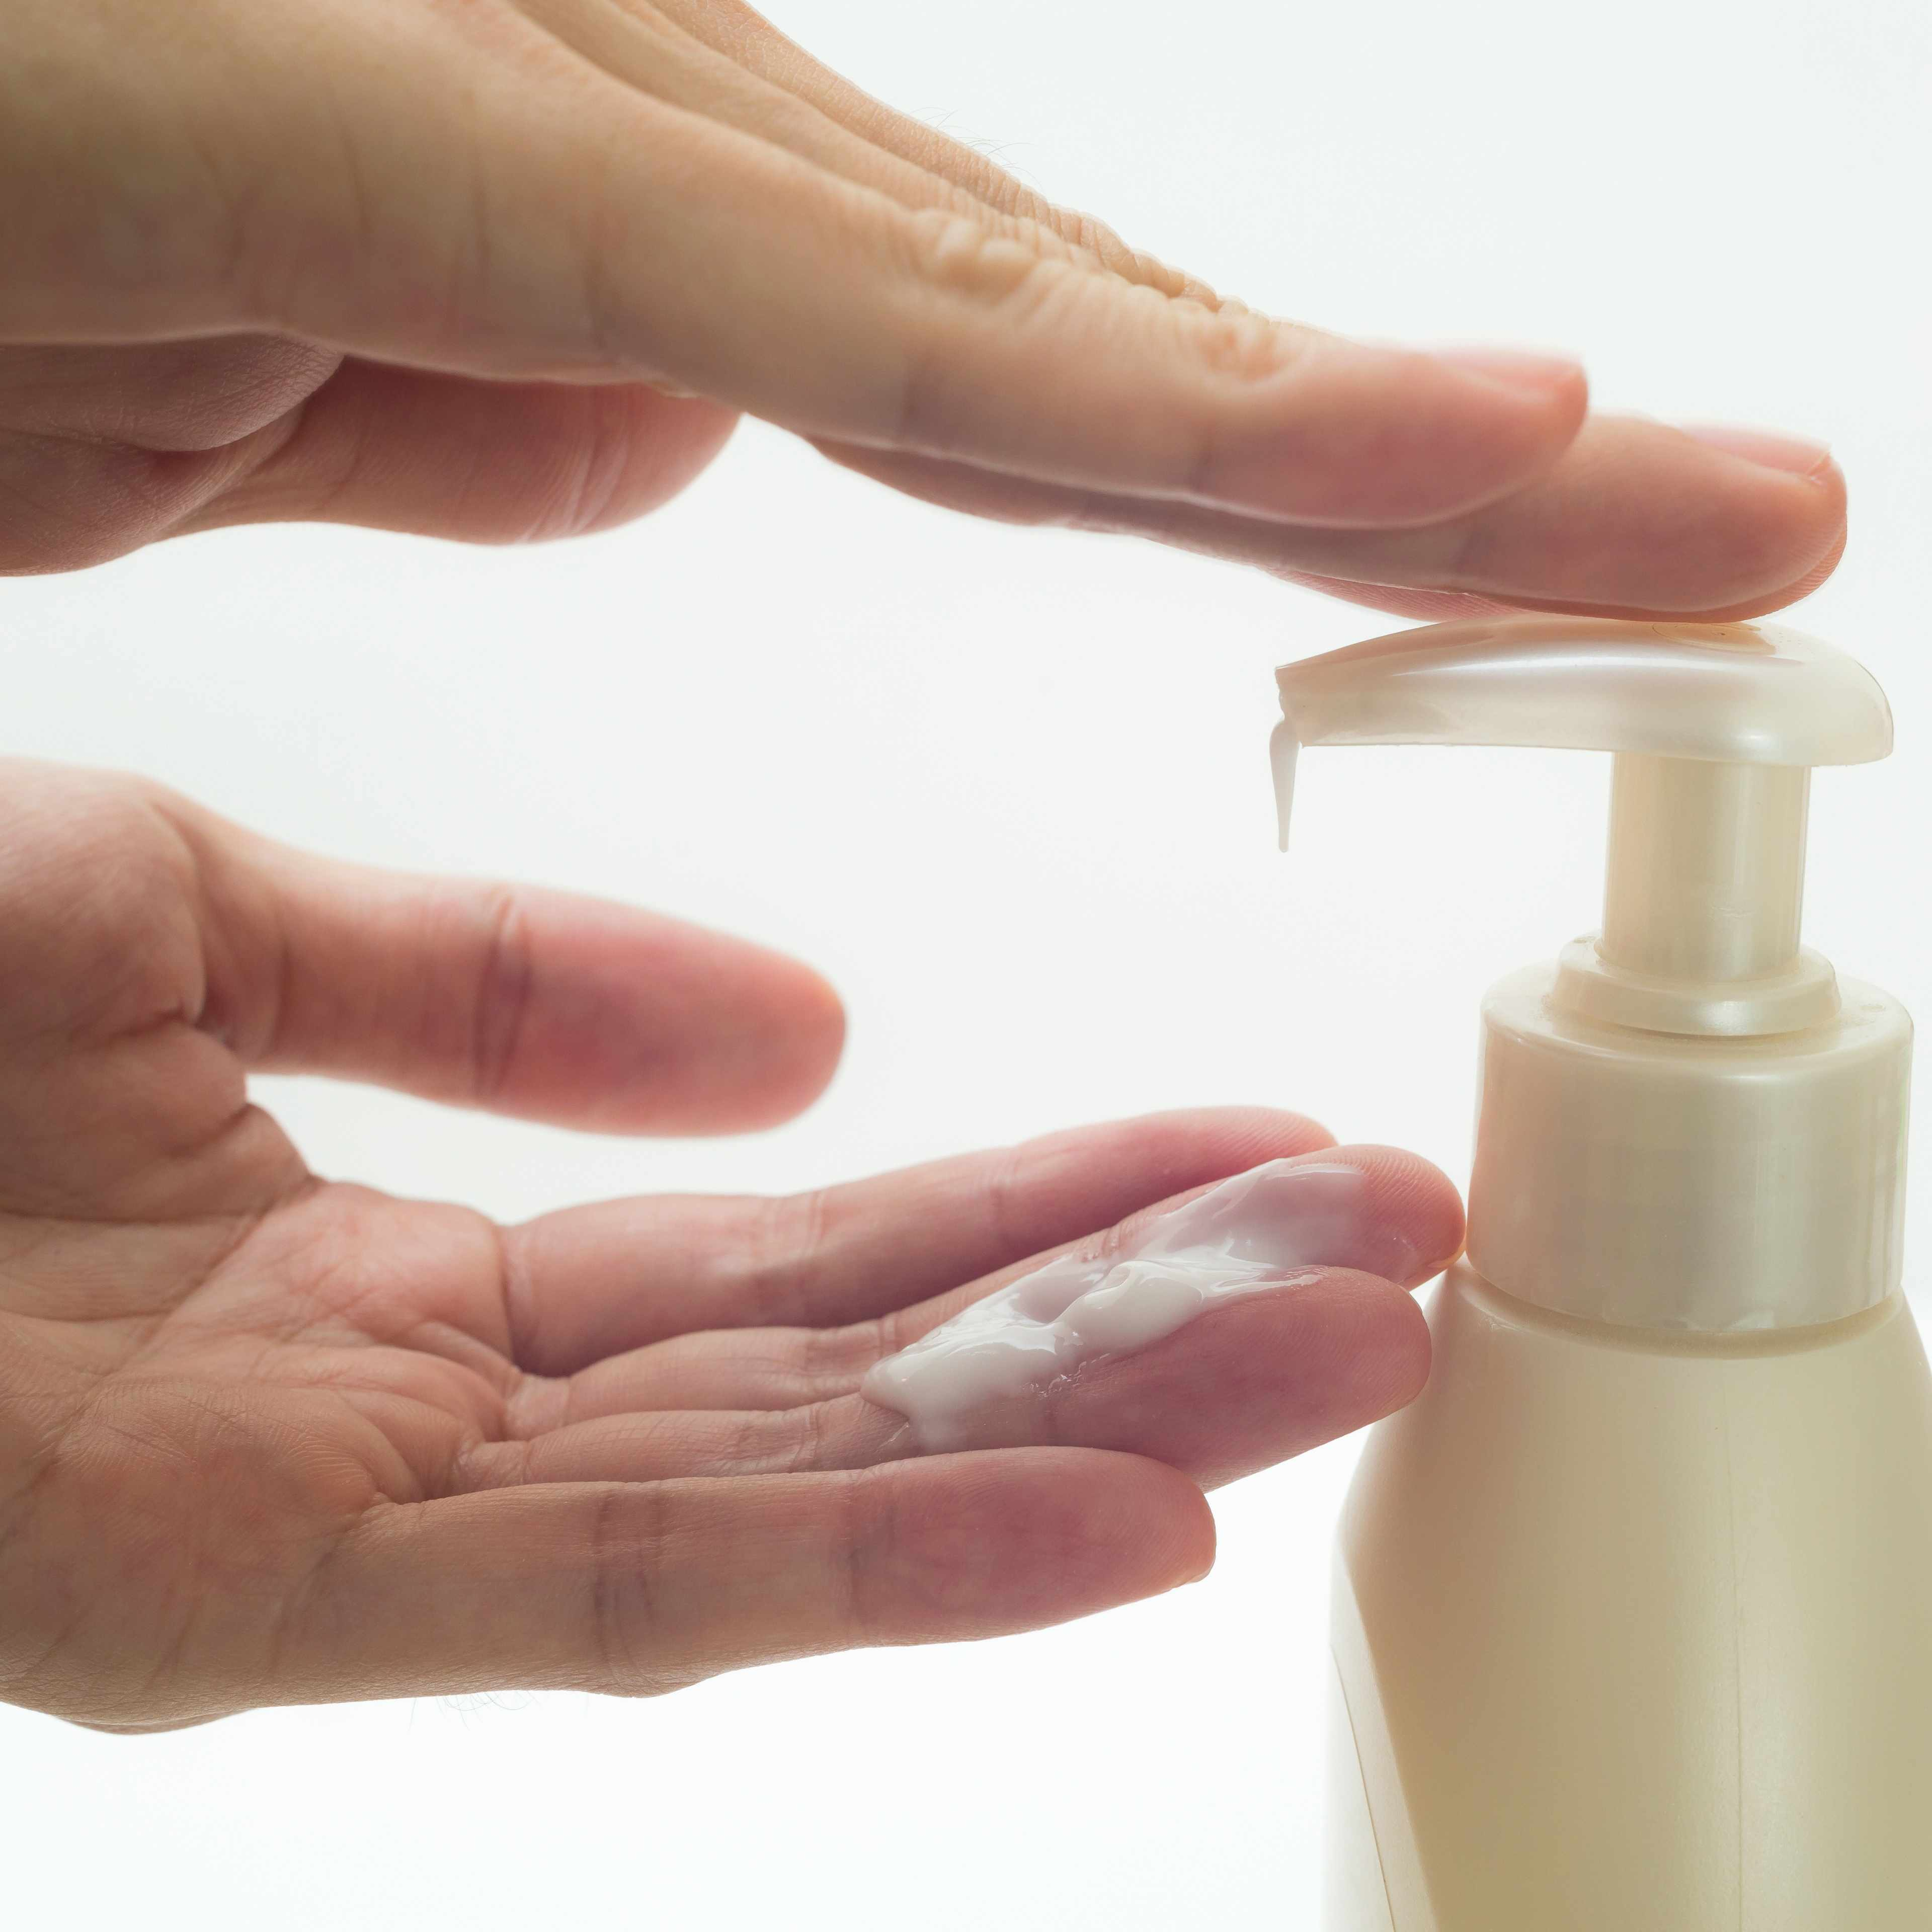 a close-up of two hands pumping lotion from a bottle